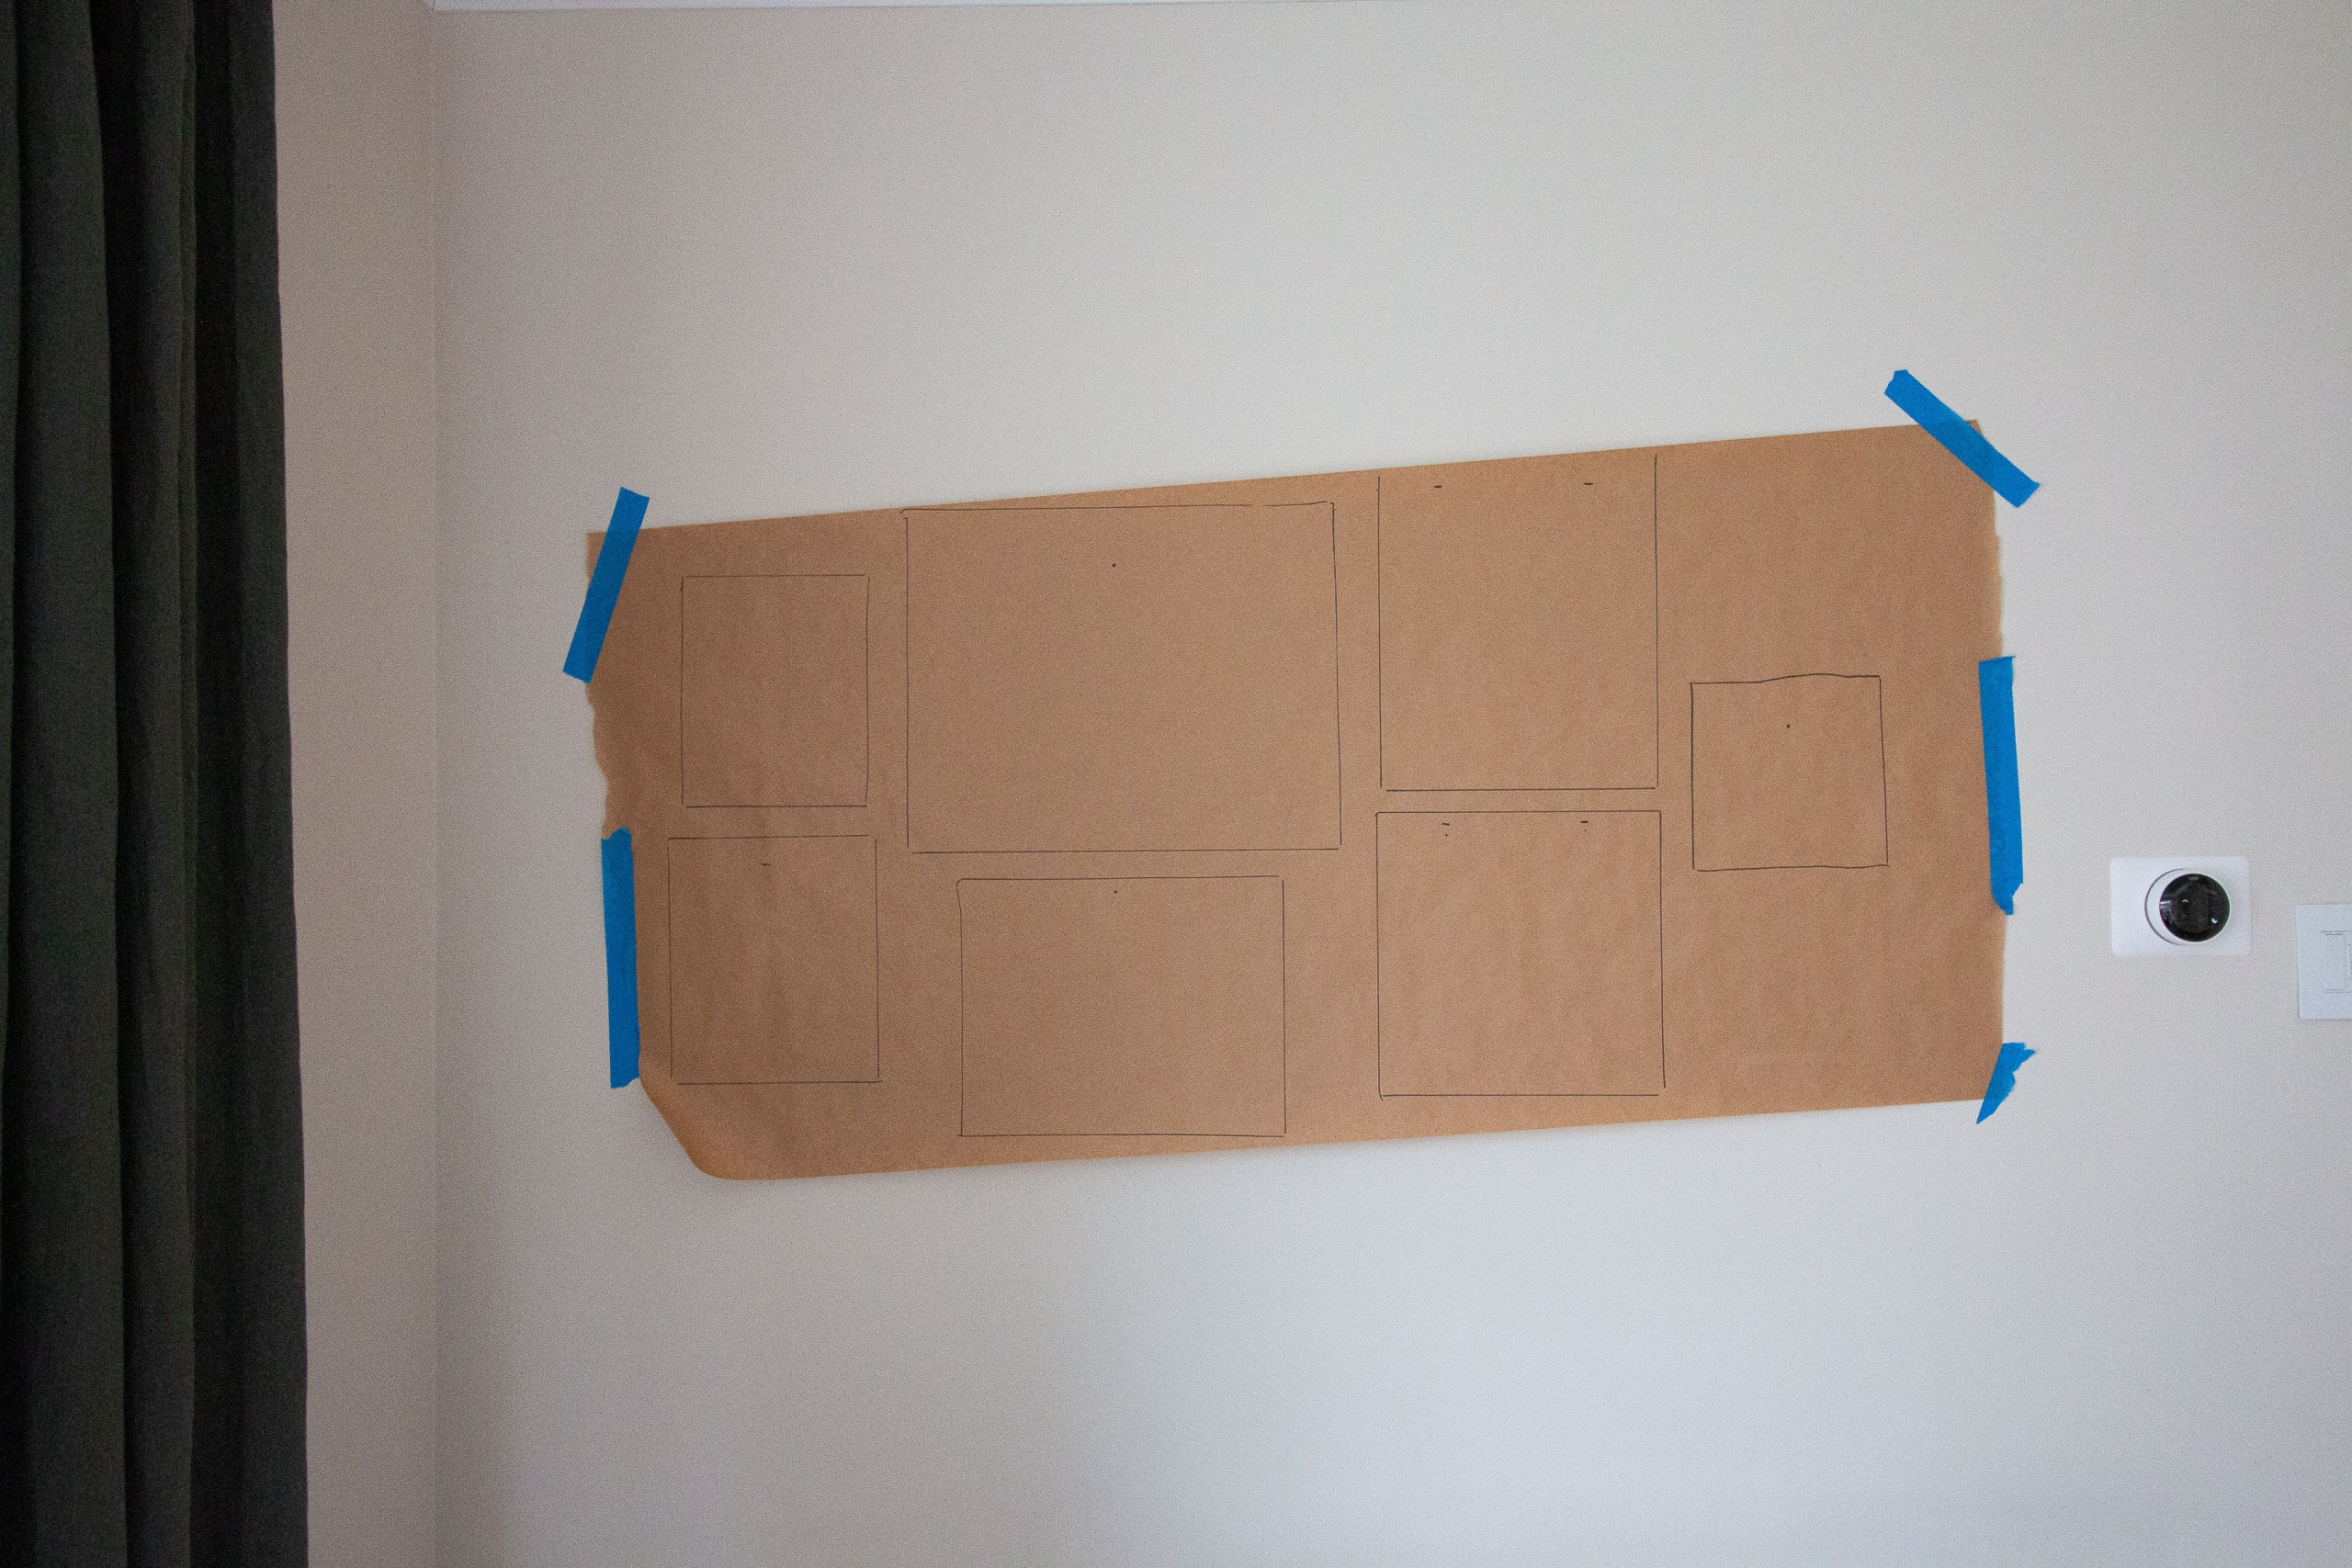 Hang wrapping paper on the wall